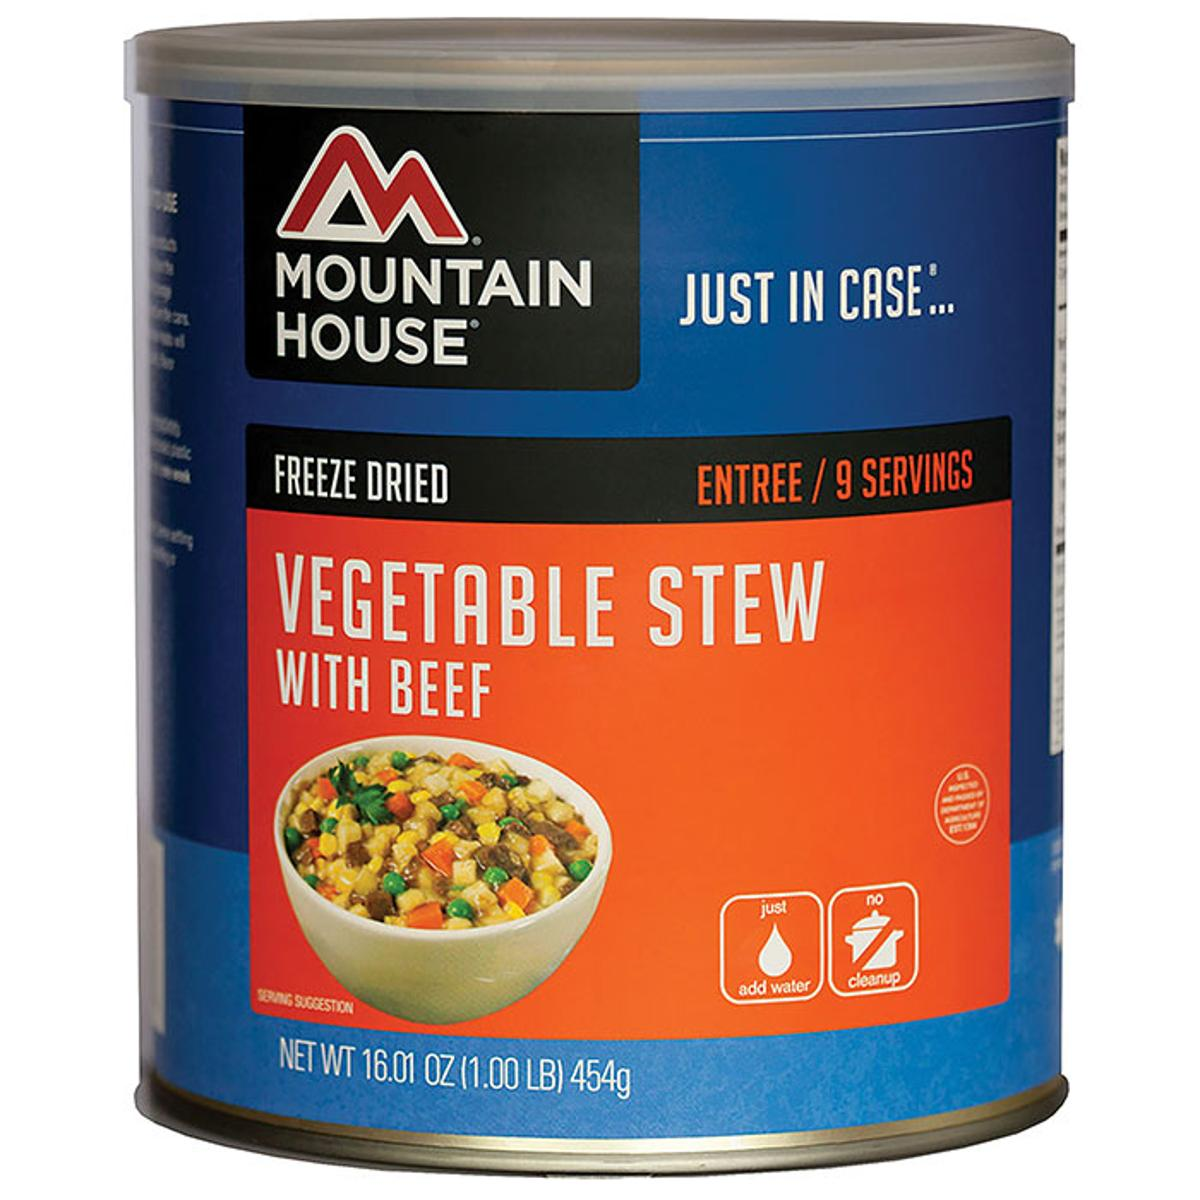 Mountain House Freeze Dried Vegetable Stew with Beef Can by Mountain House